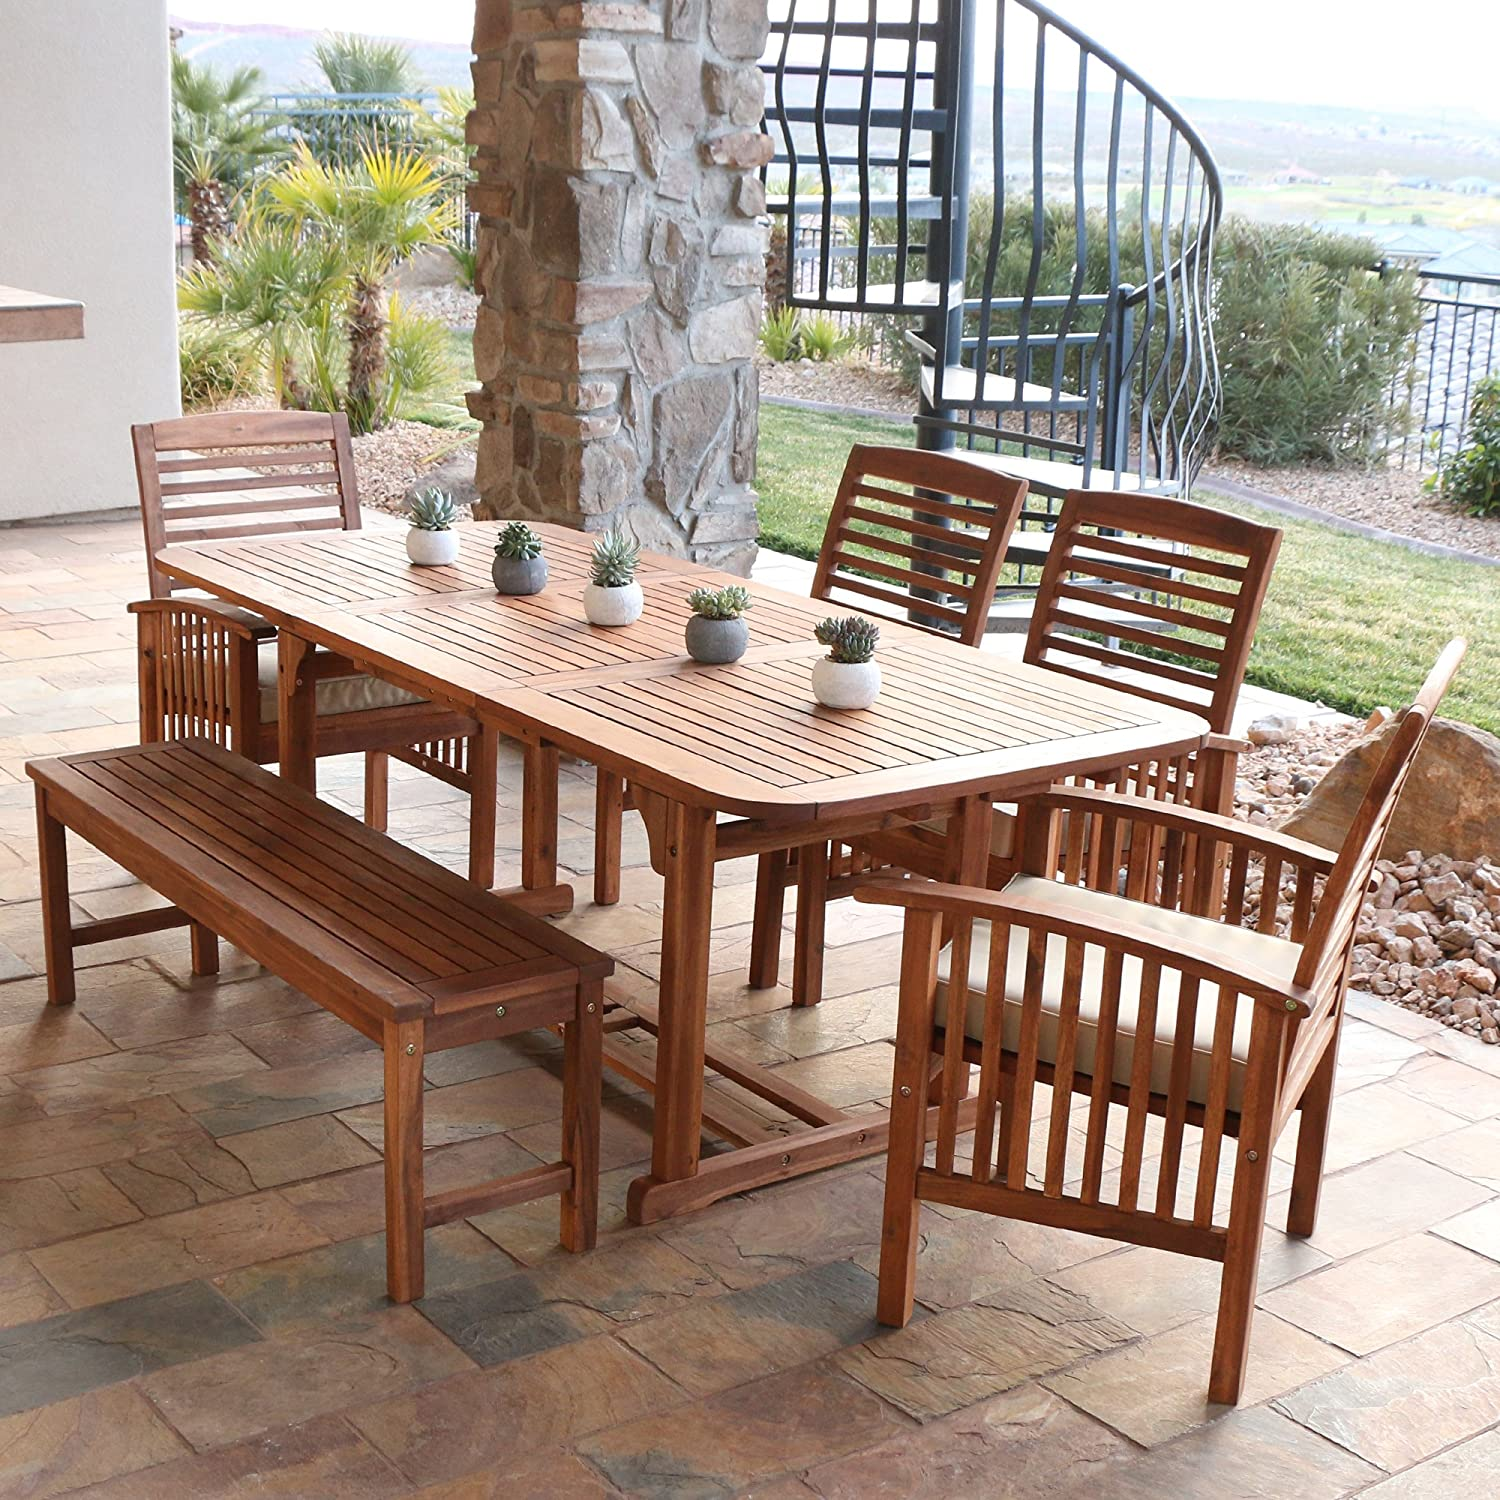 room sale and design mahogany for adorable scenic modern dining outdoor polished stylish furniture best set on durable patio brown teak ideas comfortable luxury